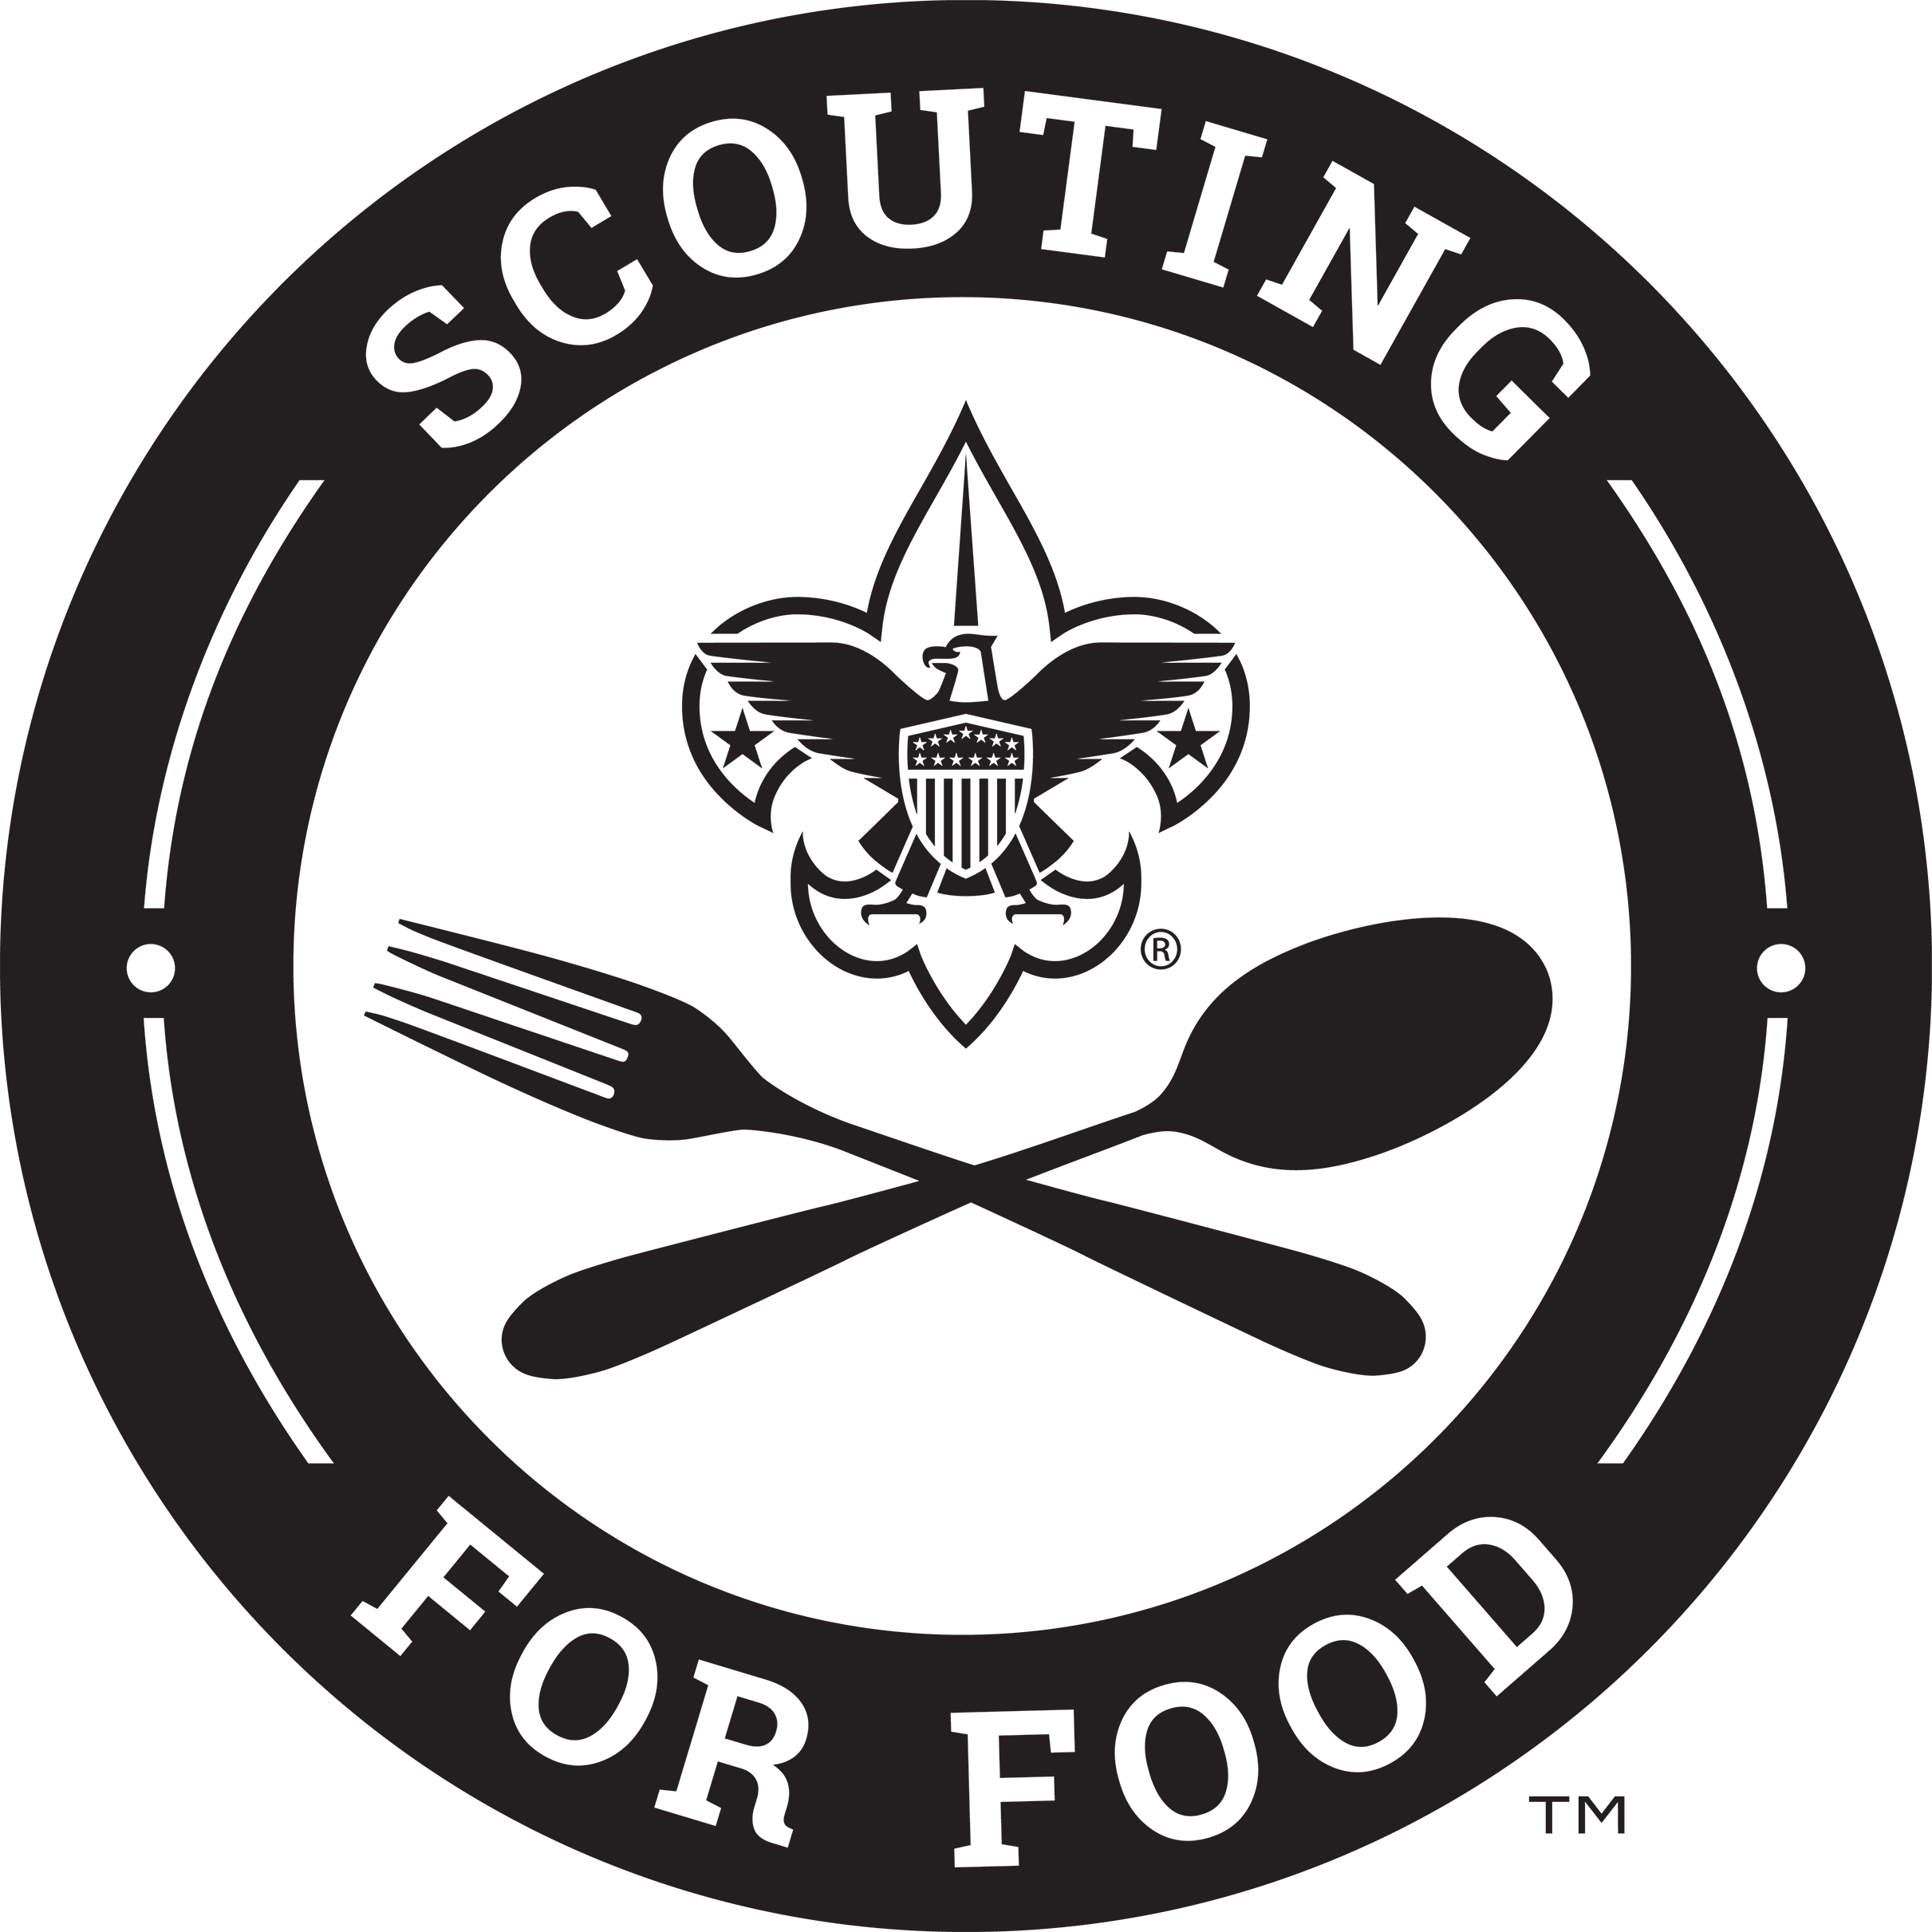 Scouting For Food